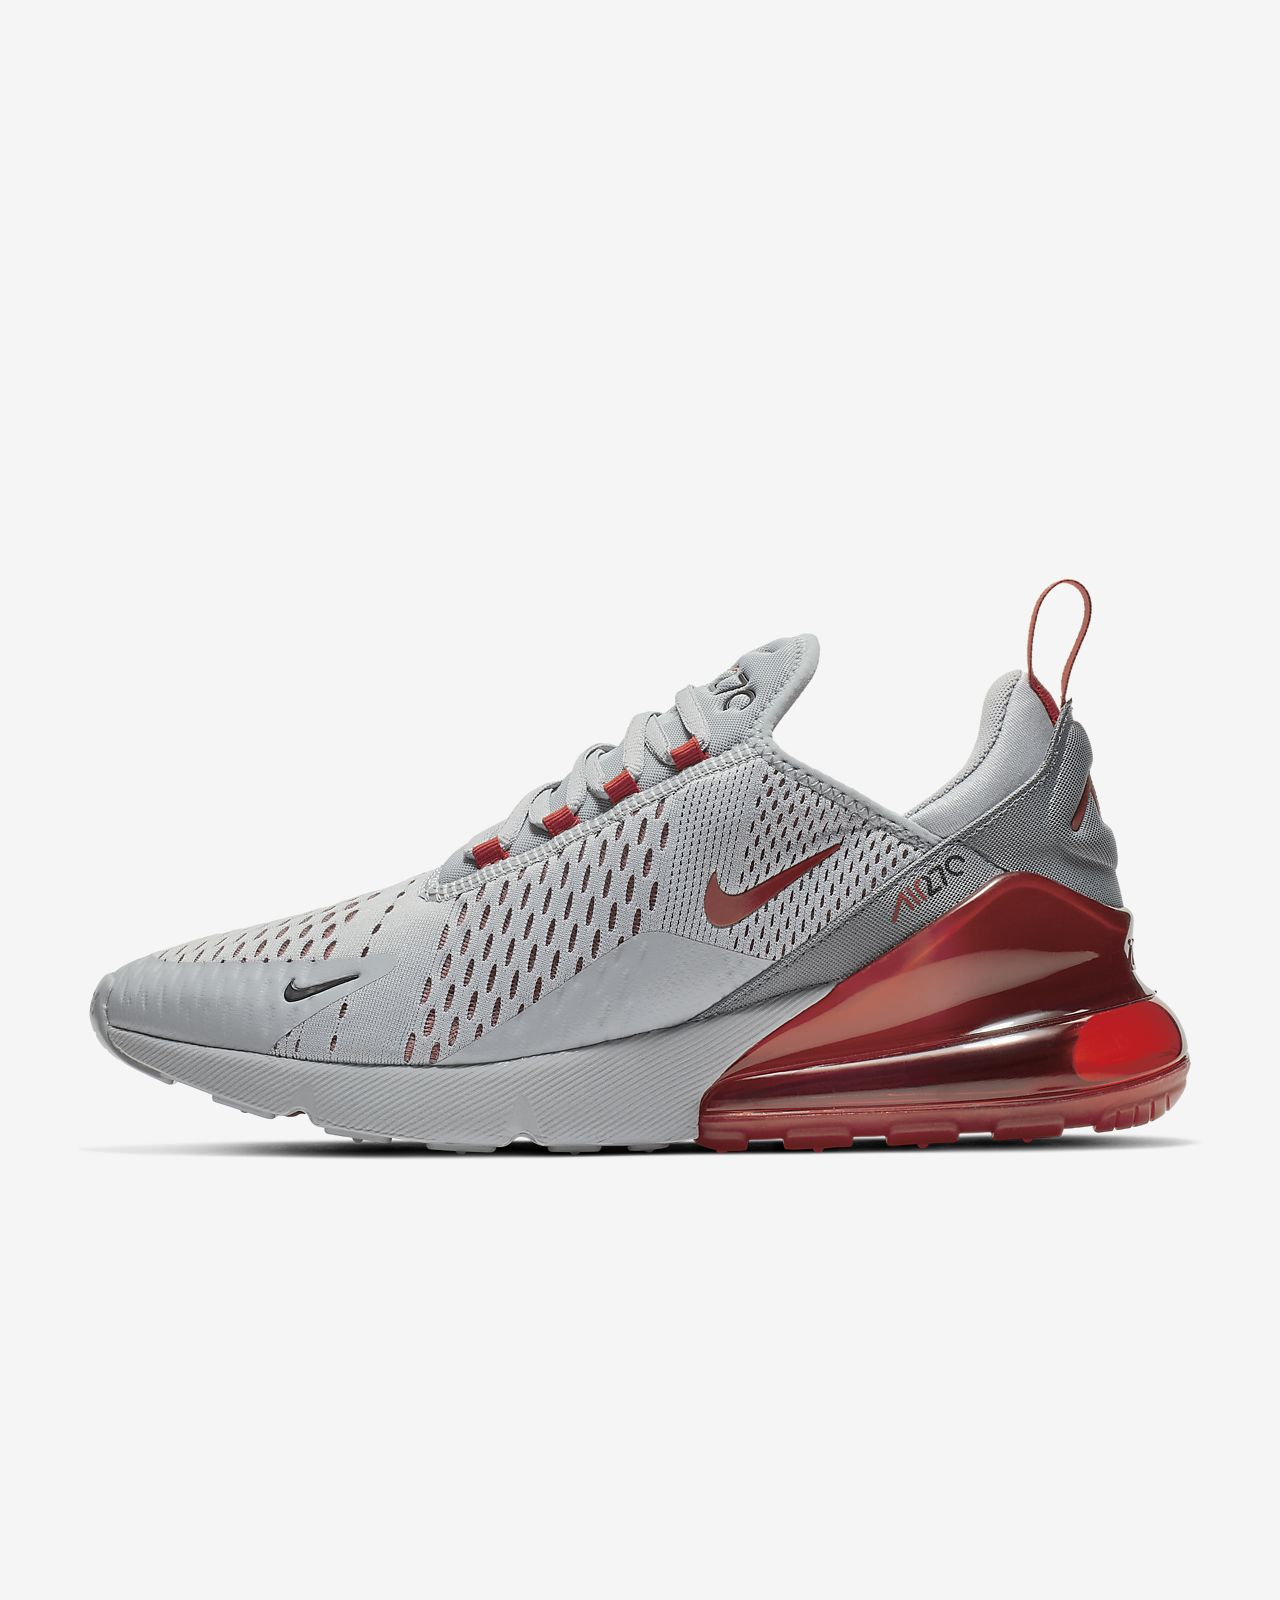 outlet store 2537f 0772e Nike Air Max 270 Men's Shoe. Nike.com ID